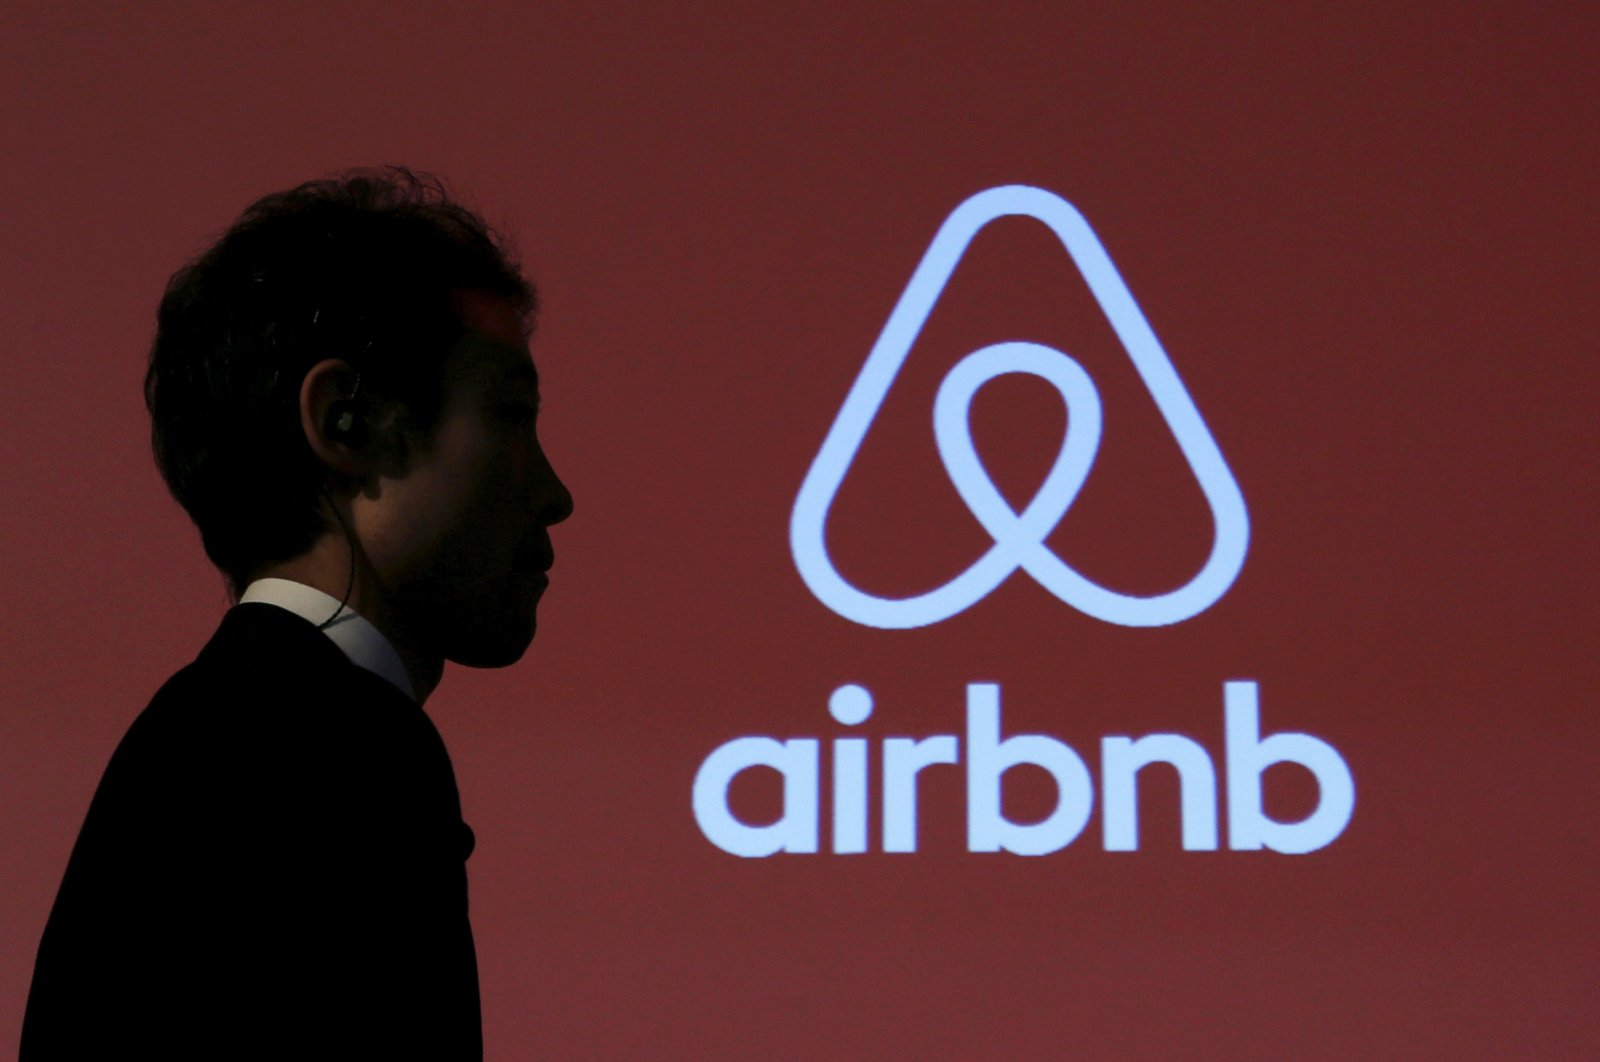 A man walks past a logo of Airbnb after a news conference in Tokyo, Japan, Nov. 26, 2015. (REUTERS)